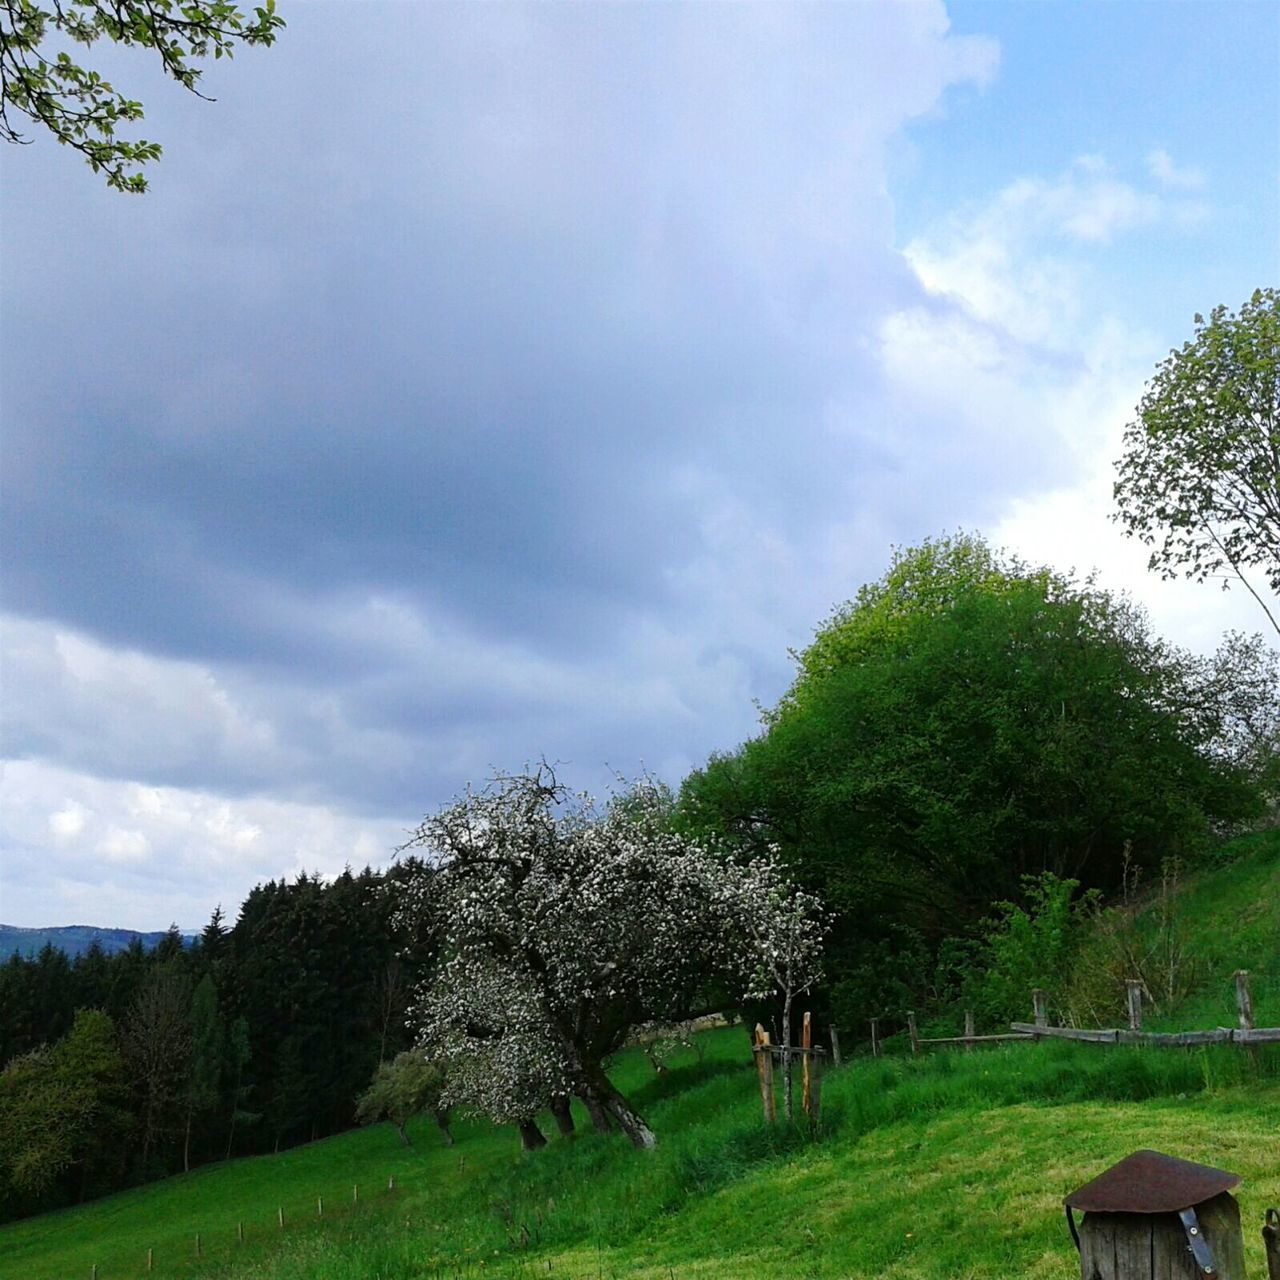 tree, sky, cloud - sky, nature, grass, beauty in nature, growth, day, green color, landscape, scenics, field, tranquility, no people, outdoors, animal themes, domestic animals, mammal